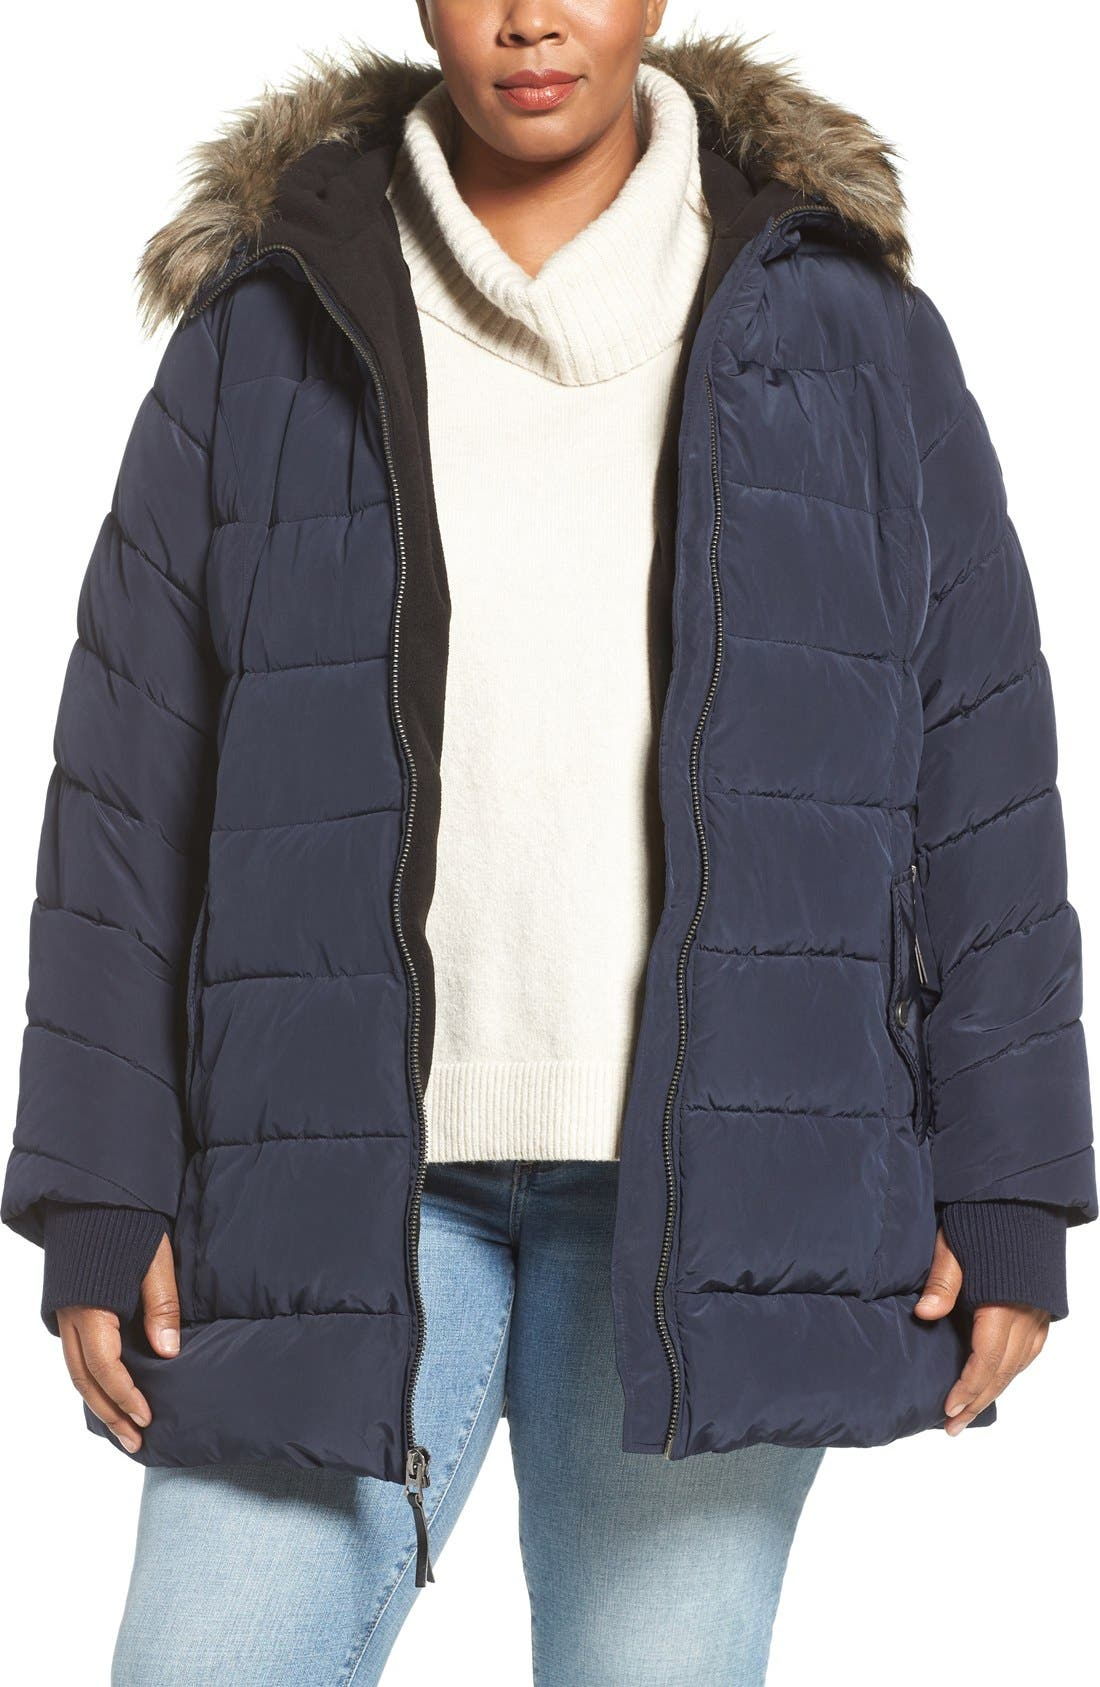 Main Image - Lucky Brand Belted Puffer Jacket with Faux Fur Trim (Plus Size)